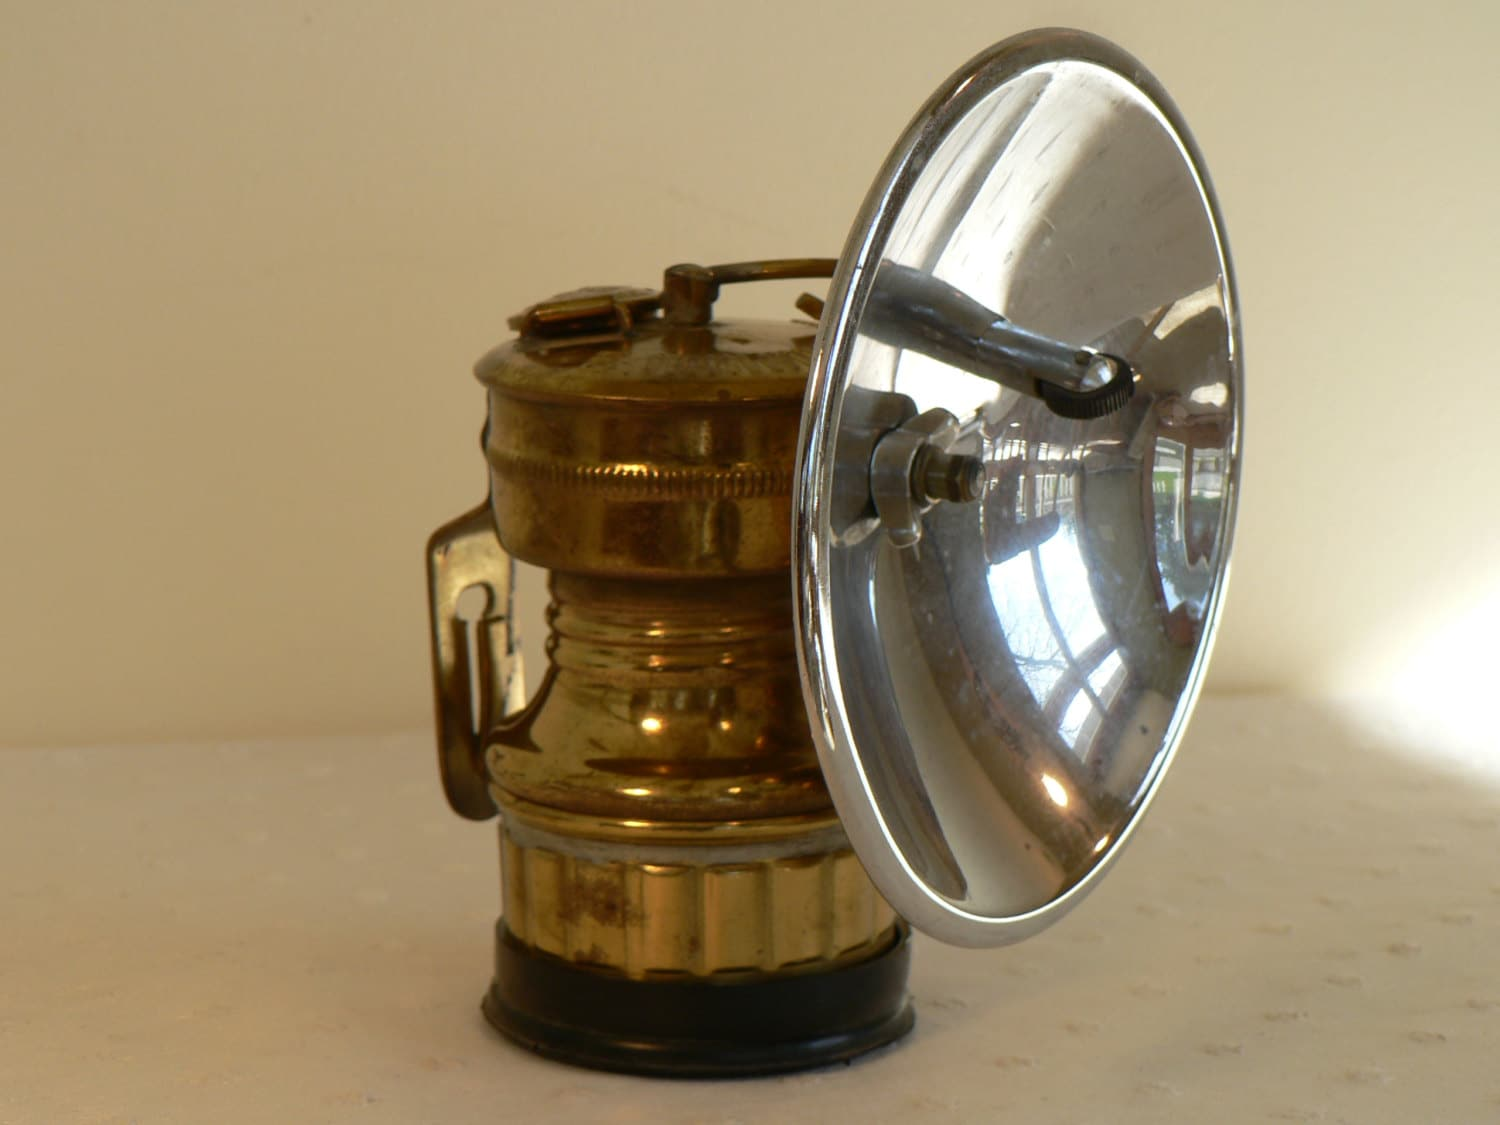 Vintage Carbide Headlamp Caving Lamp Climbing Lantern